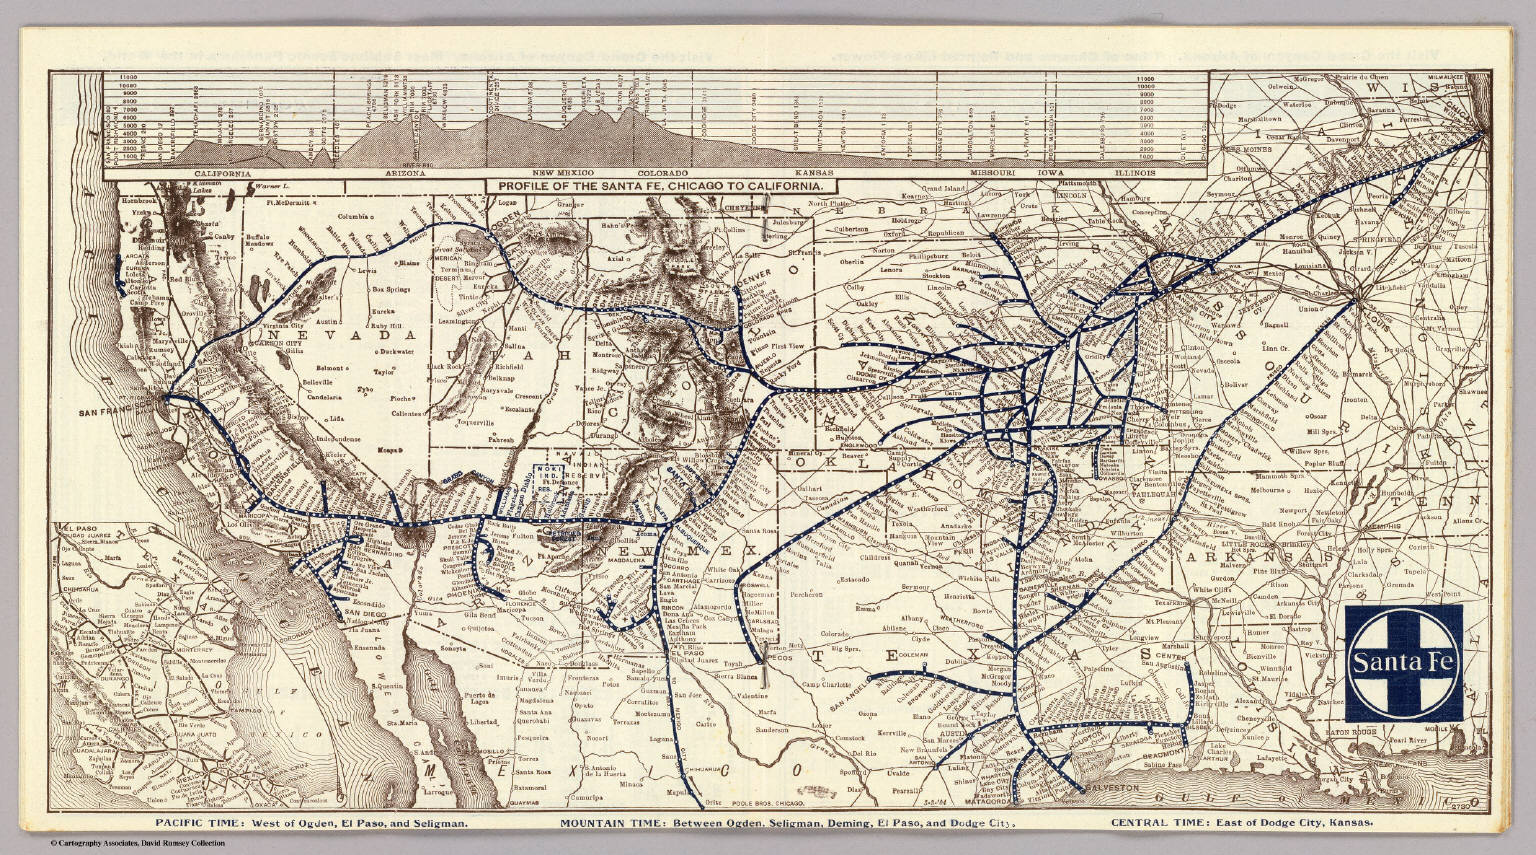 Santa Fe David Rumsey Historical Map Collection - Atchinson topeka and santa ferailroad on the us map